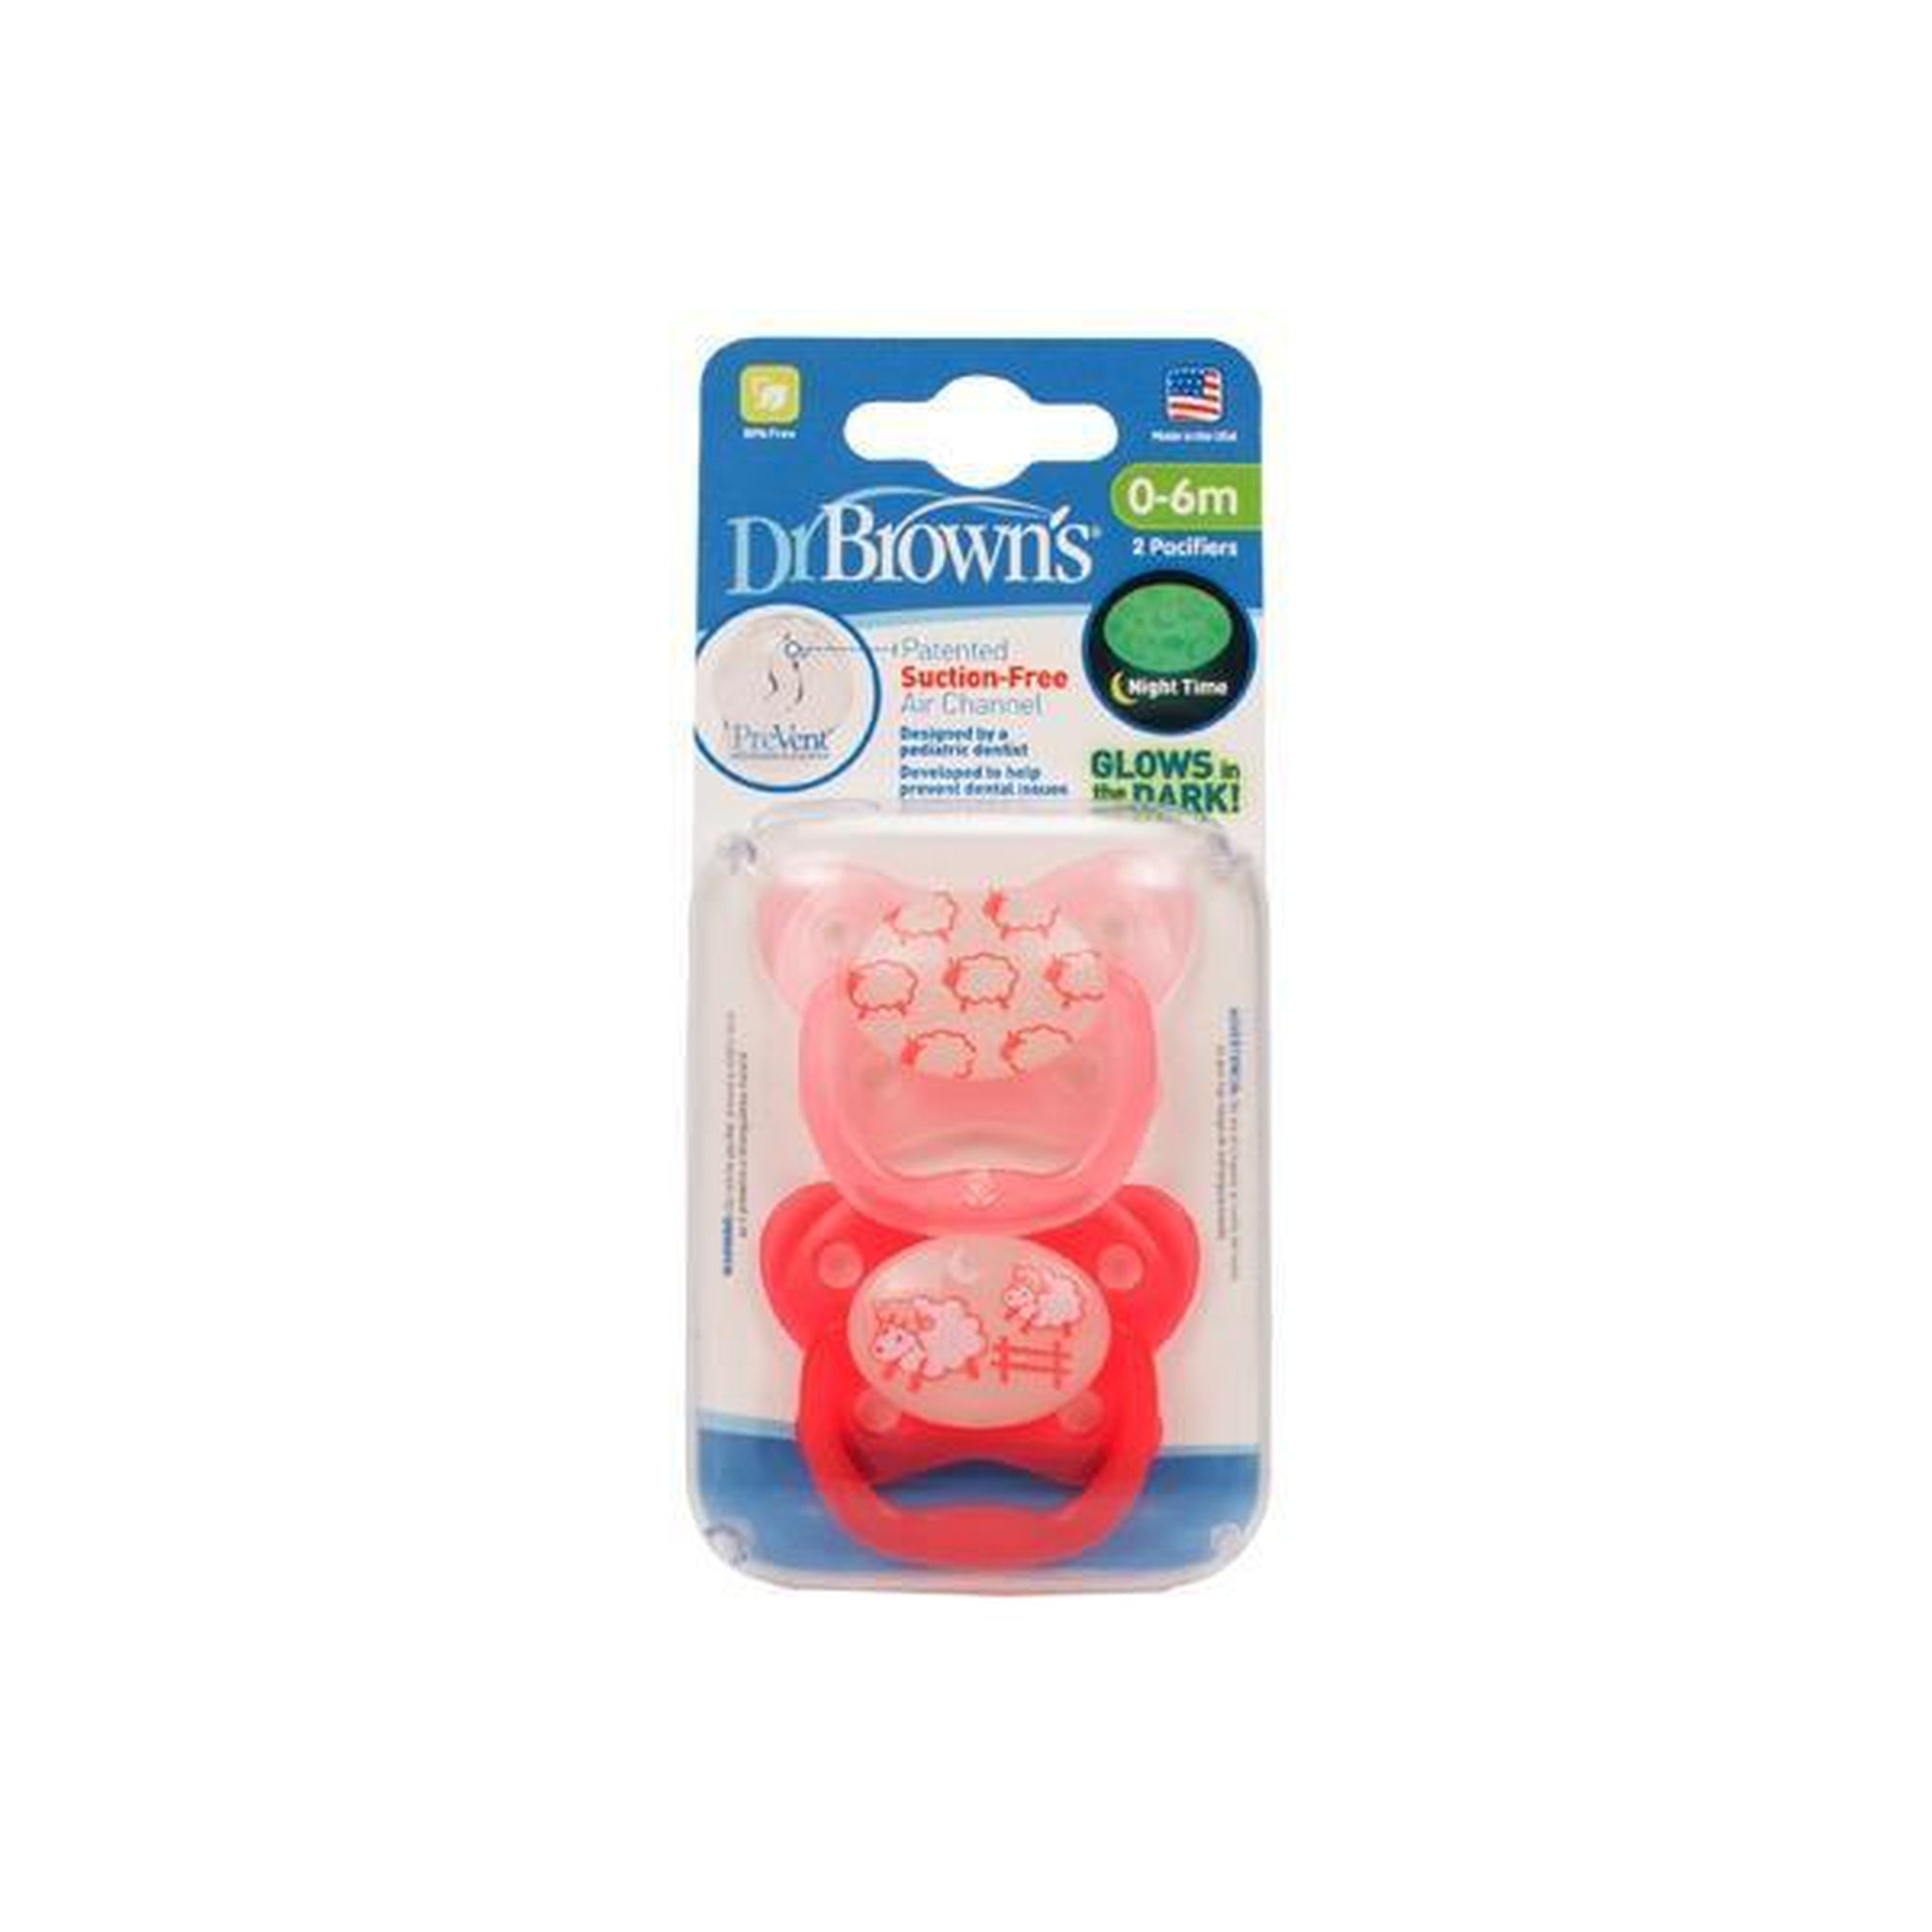 Dr. Brown's PreVent Glow in the Dark BUTTERFLY SHIELD Pacifier - Stage 1 * 0-6M - 2-Pack-Pacifier-Mother and Baby Shop Kenya's #1 Online Baby Shop